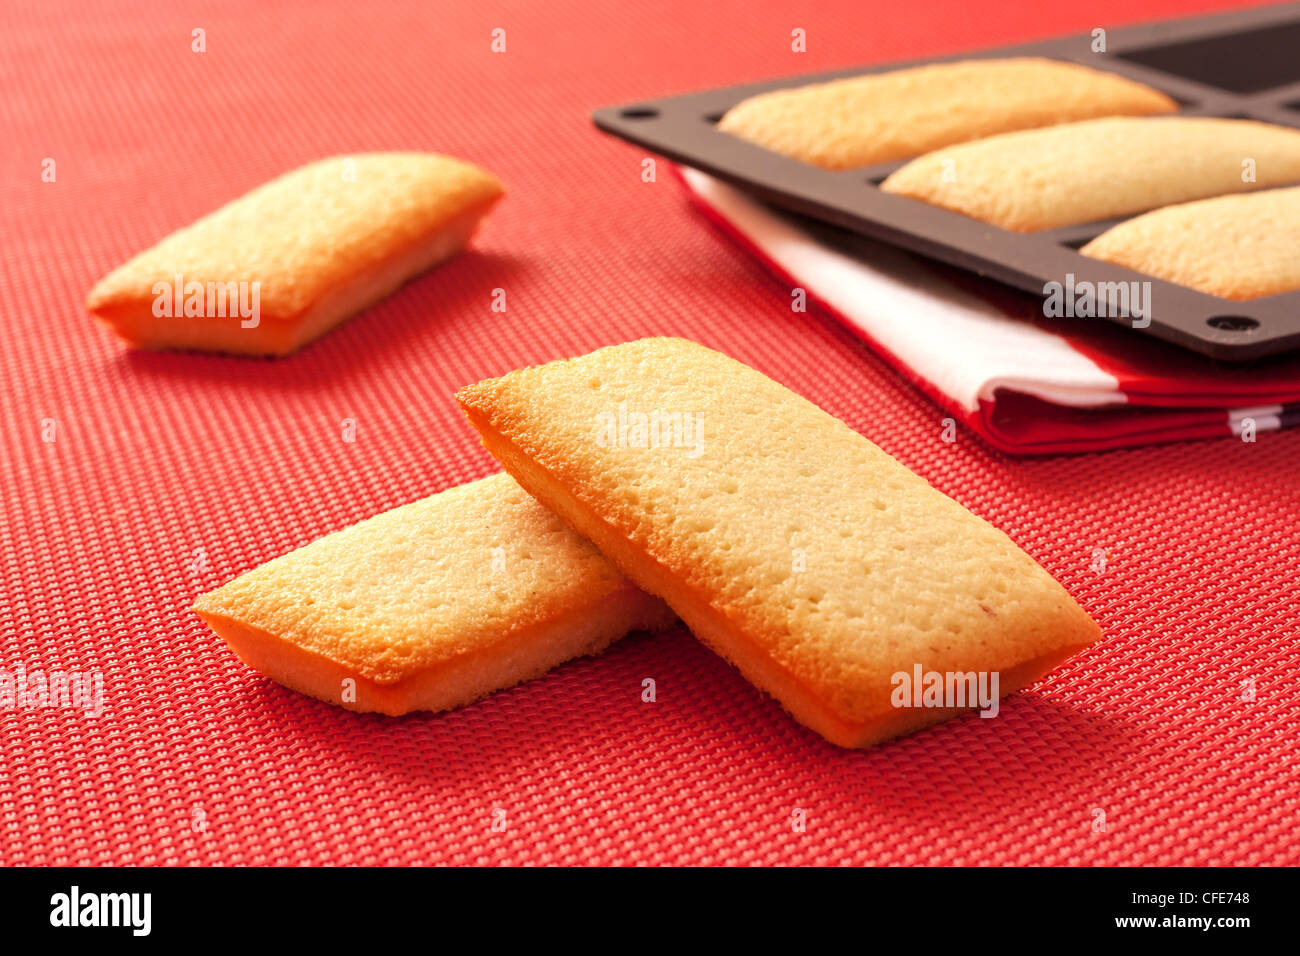 French biscuits called Financiers, with almond powder, smooth inside and crispy on the edges - Stock Image